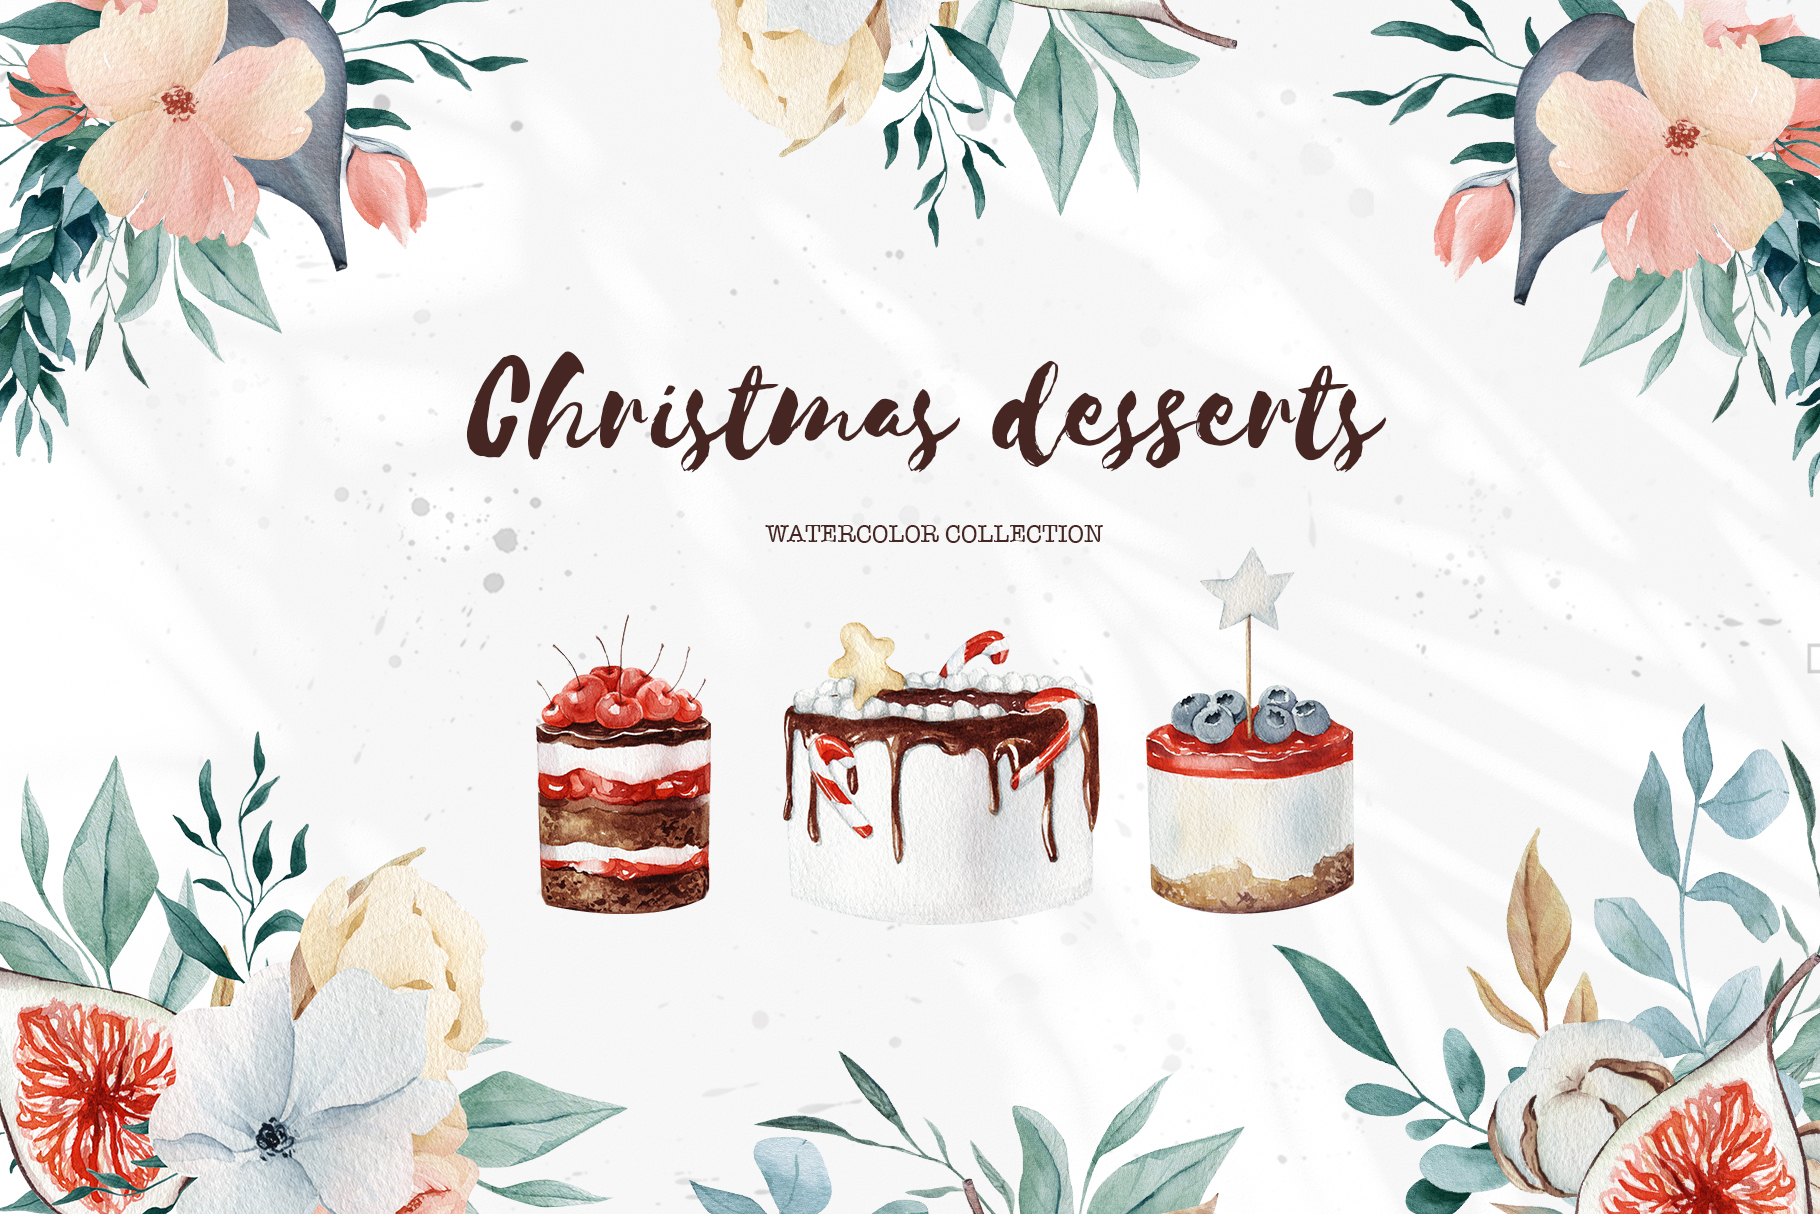 Christmas watercolor desserts example image 1